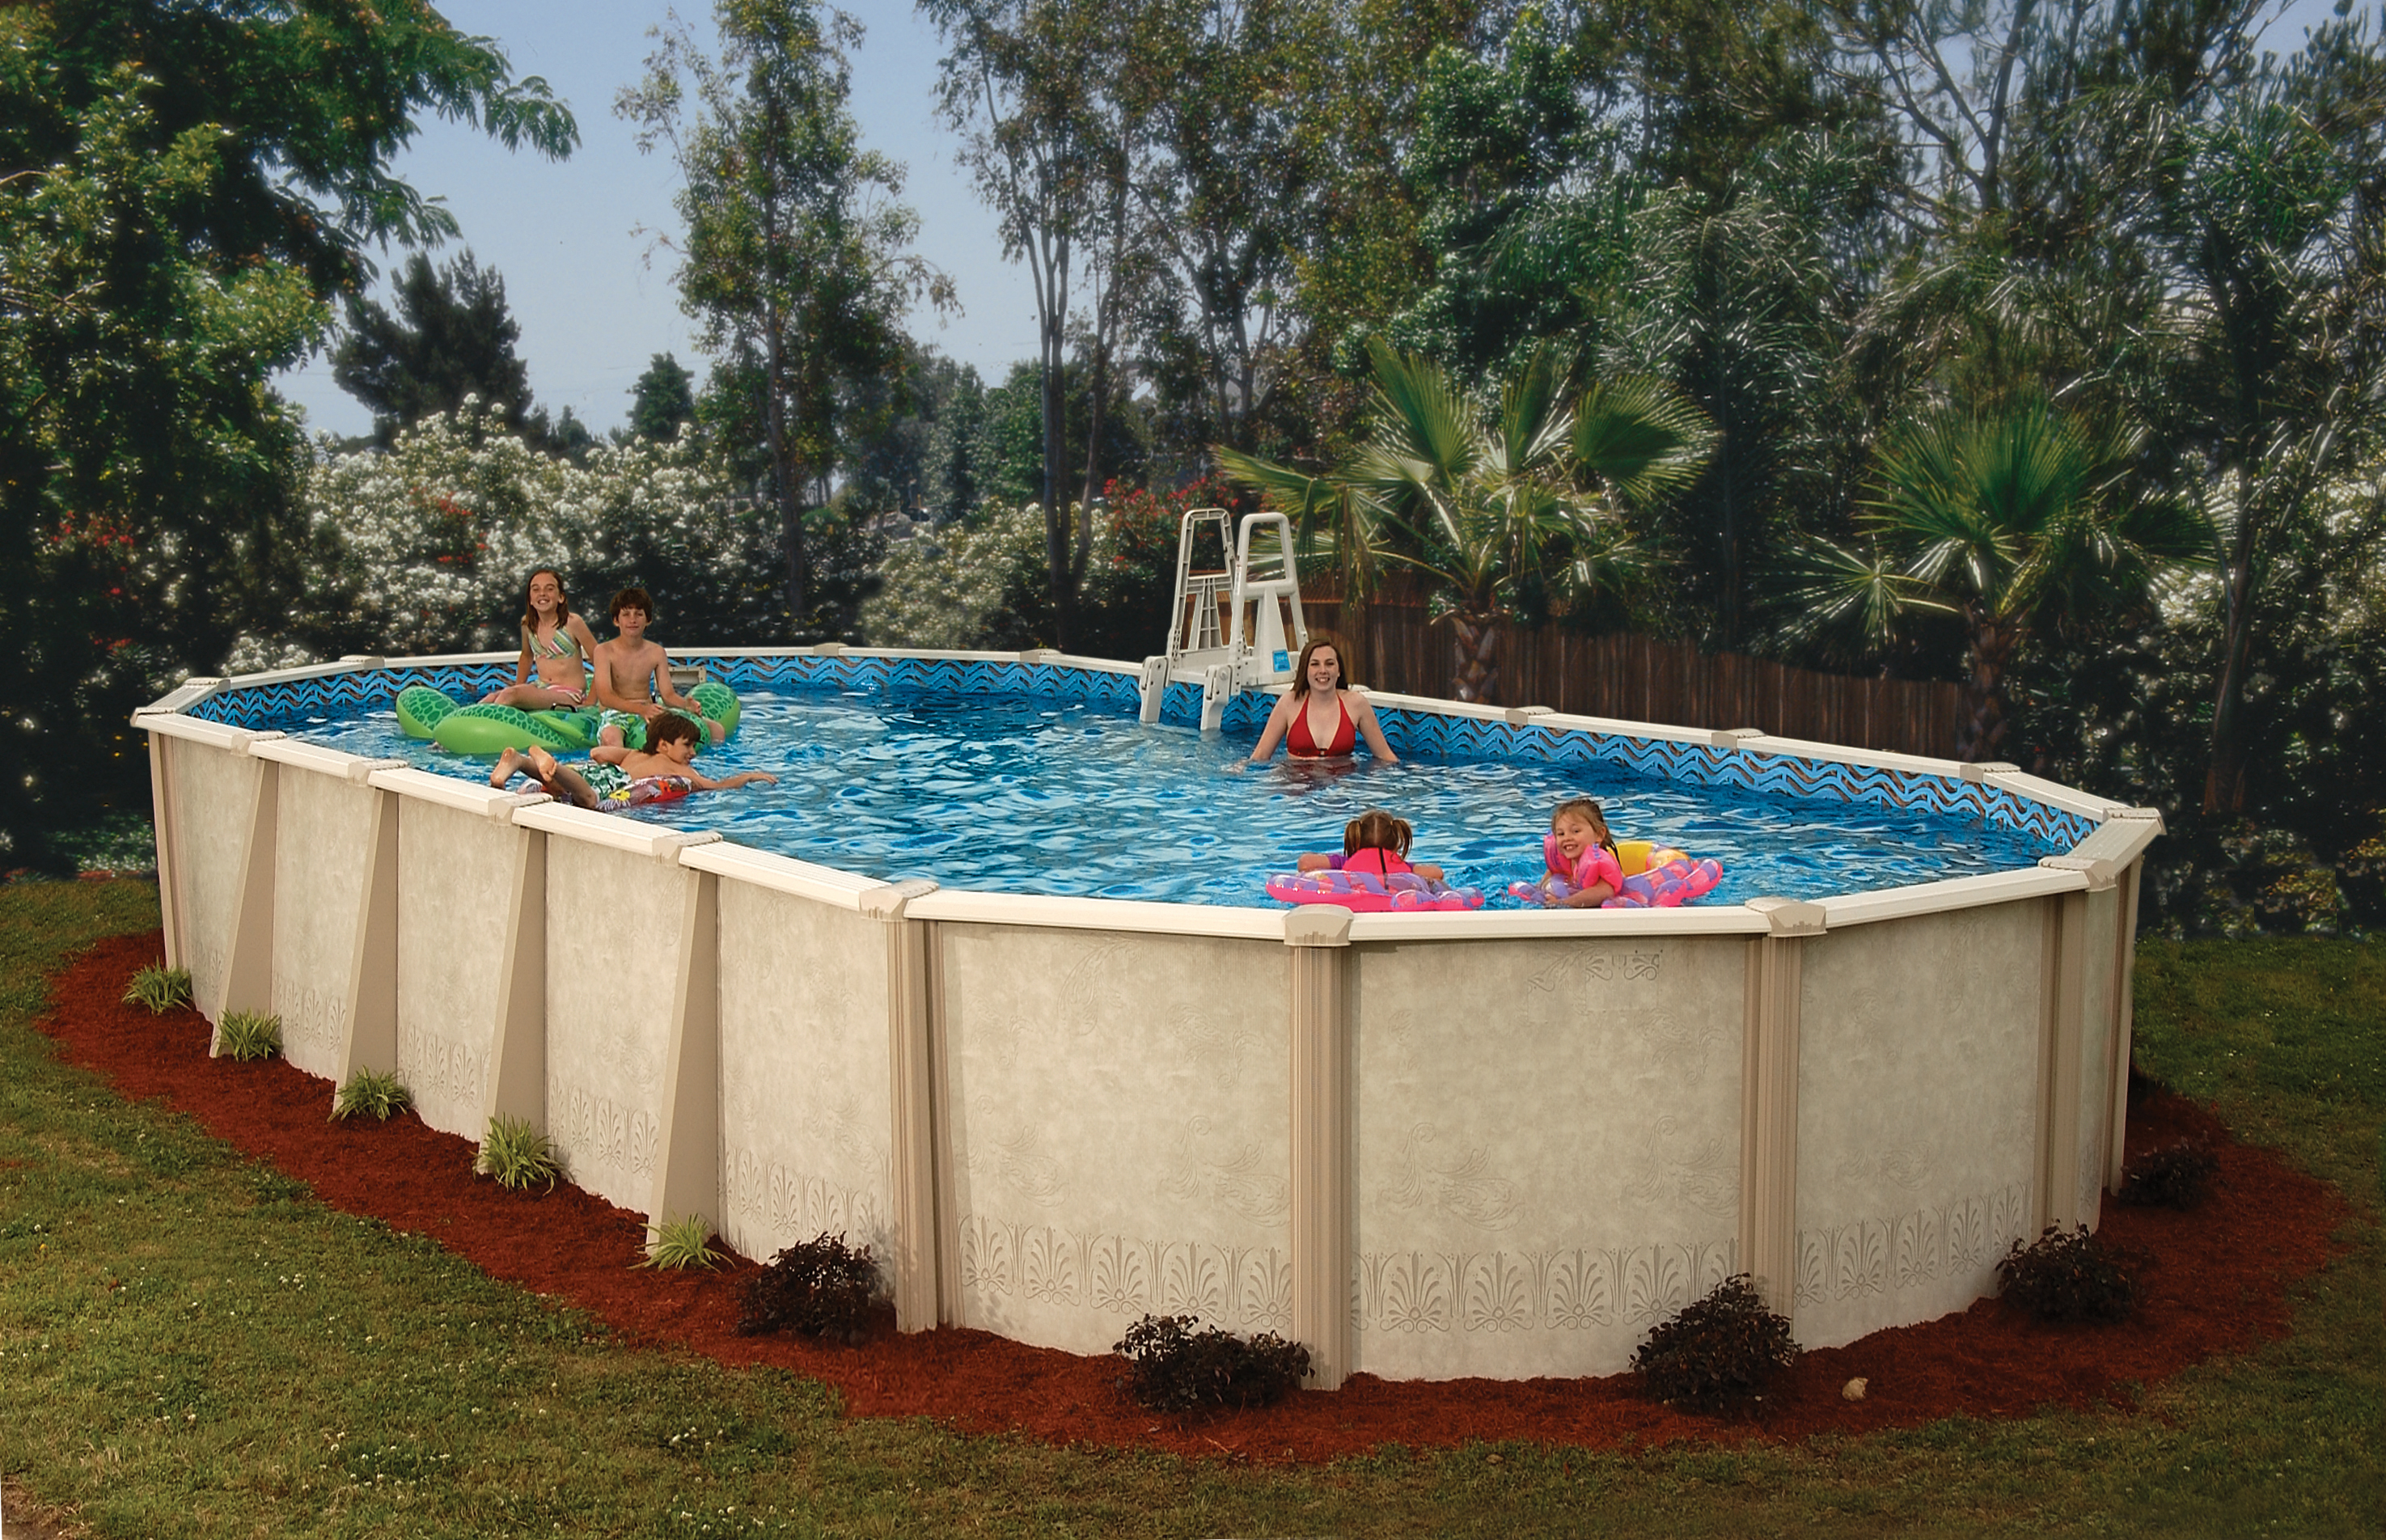 Doughboy pools sharp pools spas for Oval swimming pool